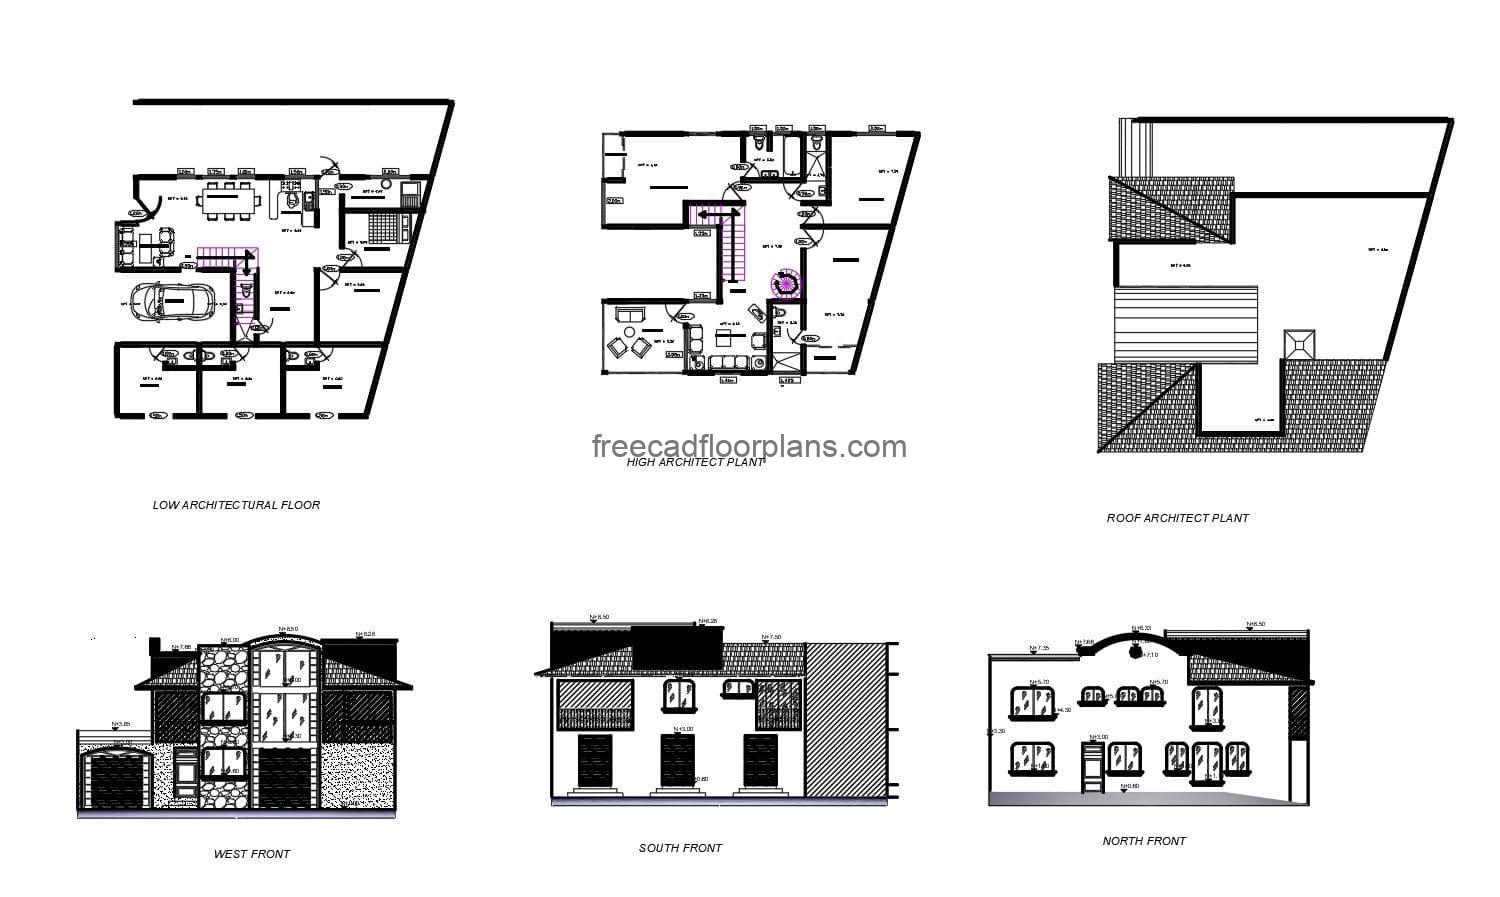 Complete architectural project of a two-level residence with five rooms, all drawings in Autocad DWG format, architectural plans, dimensioning, foundations, details of sanitary and electrical installations. Section views, elevations, structural details, isometric views of sanitary installation in DWG and electrical installation diagrams.